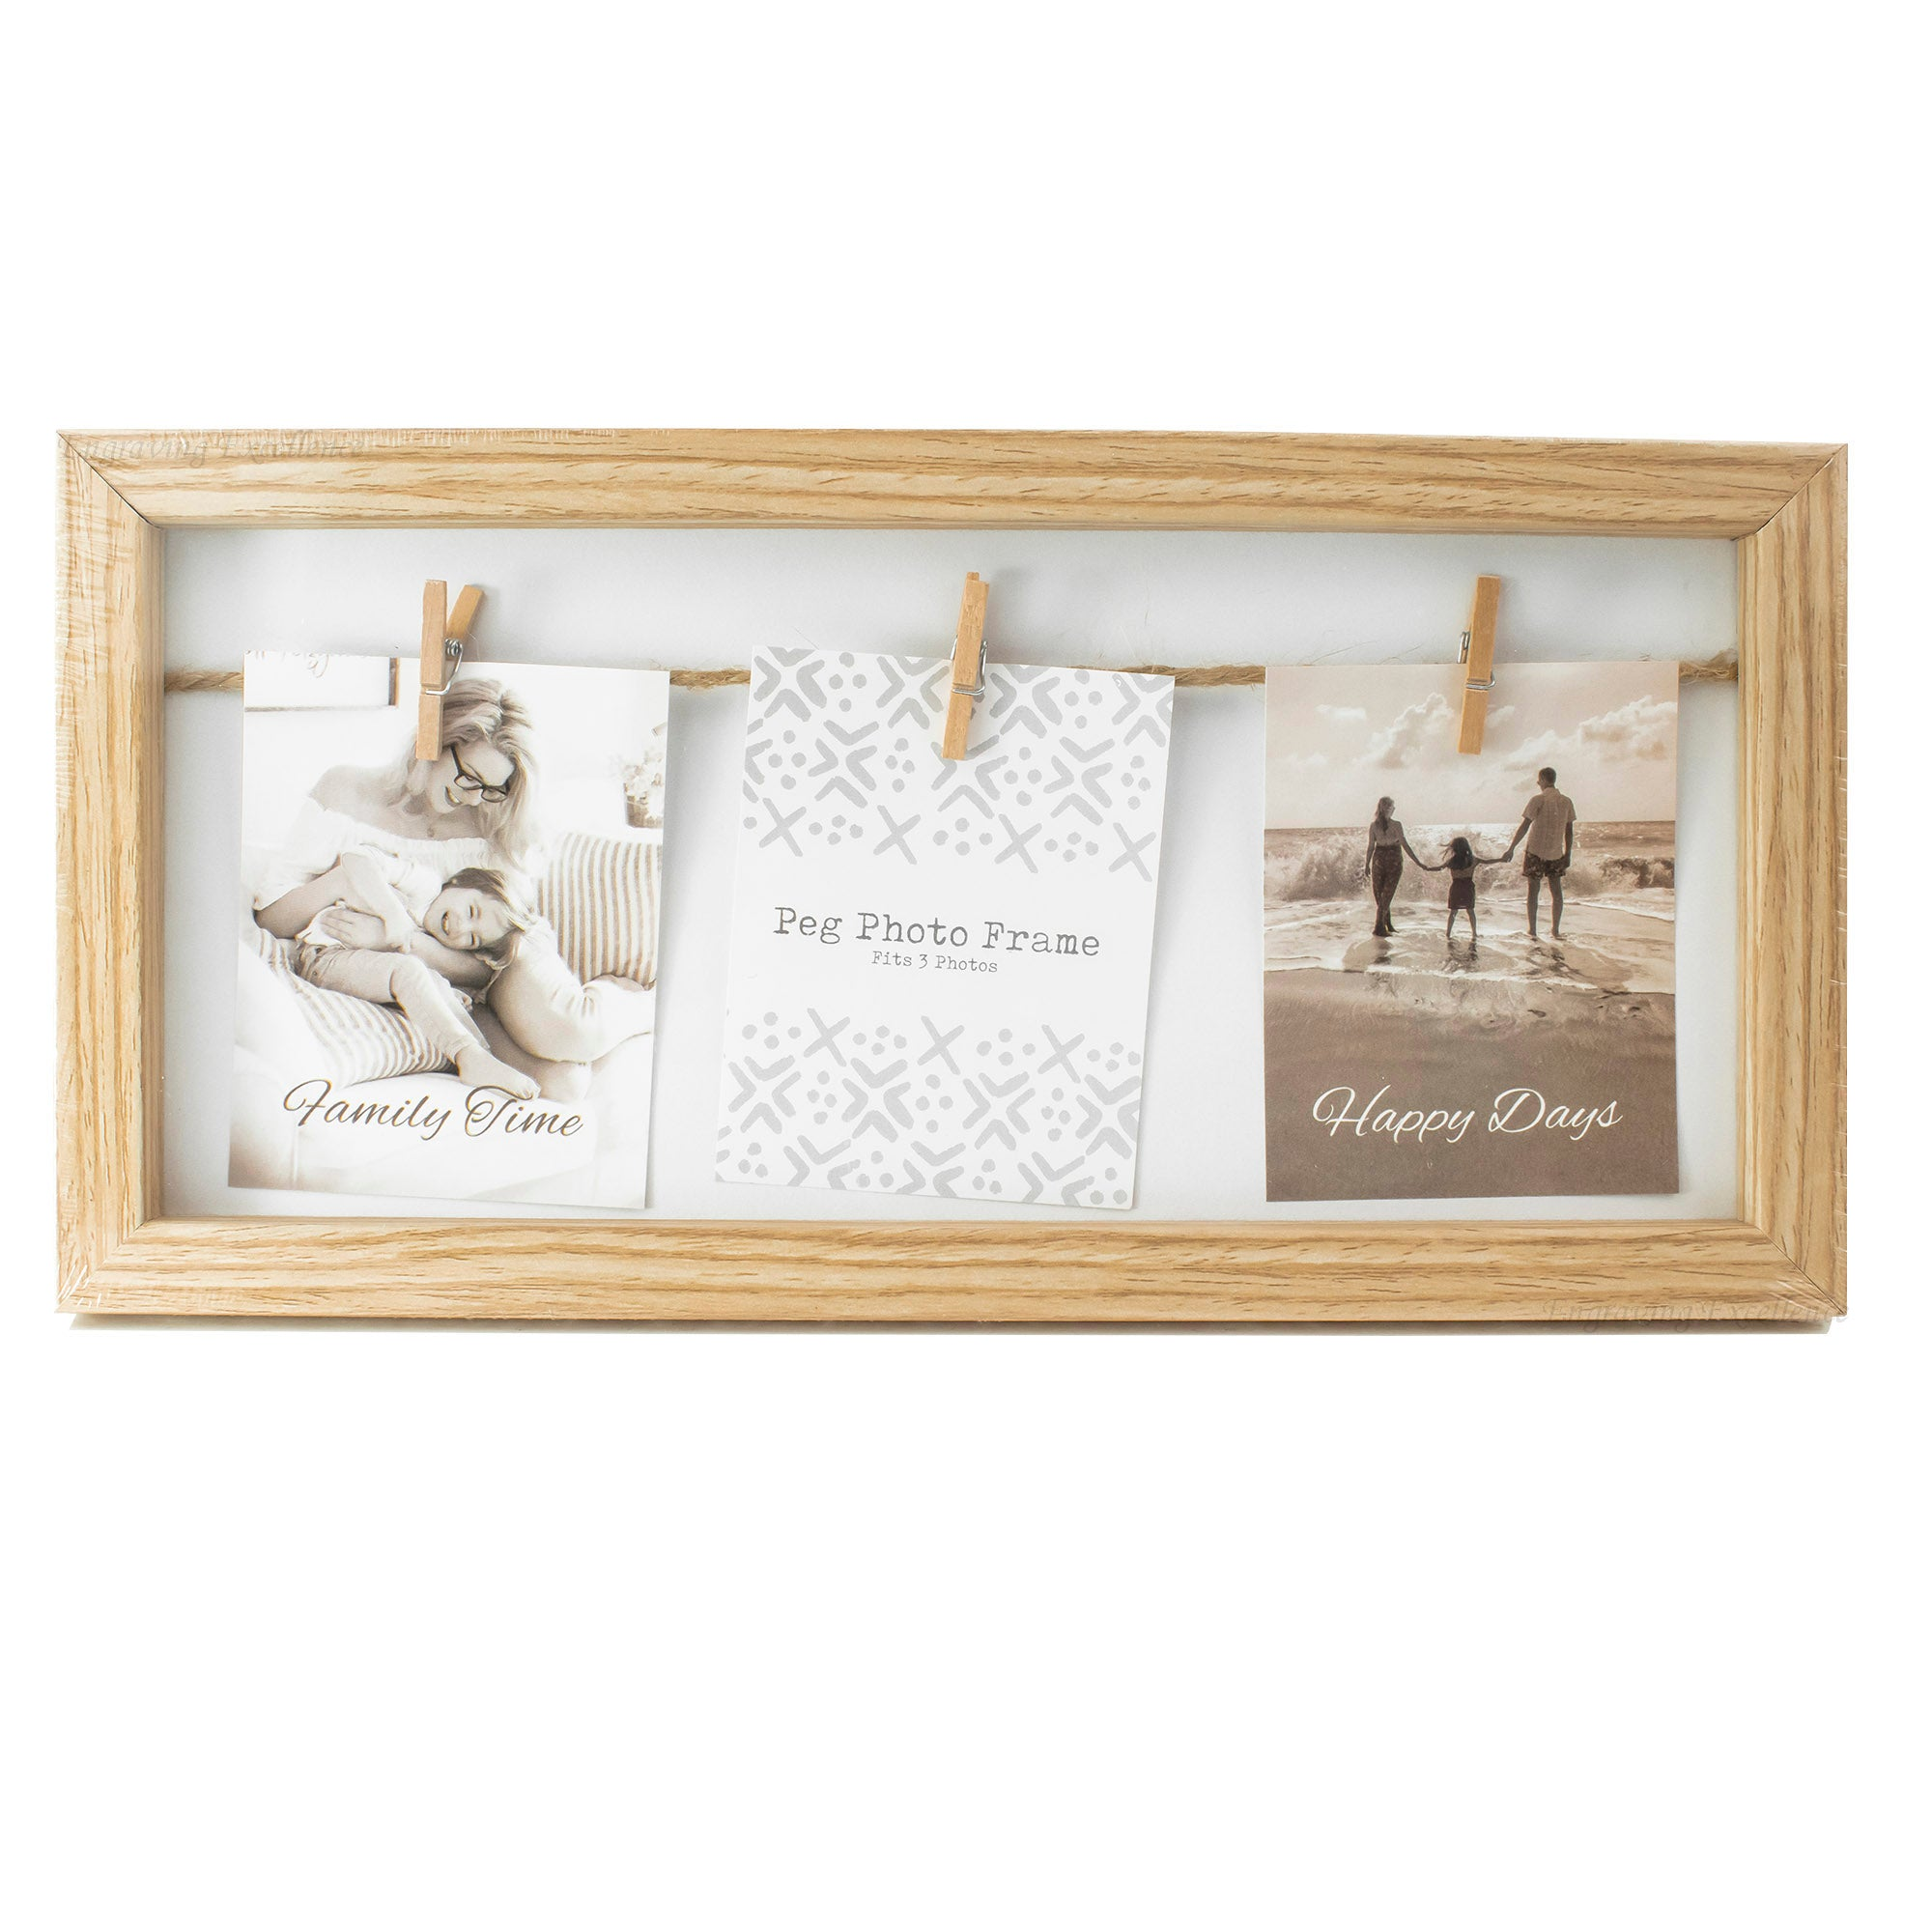 Personalised Wooden Peg Photo Frame